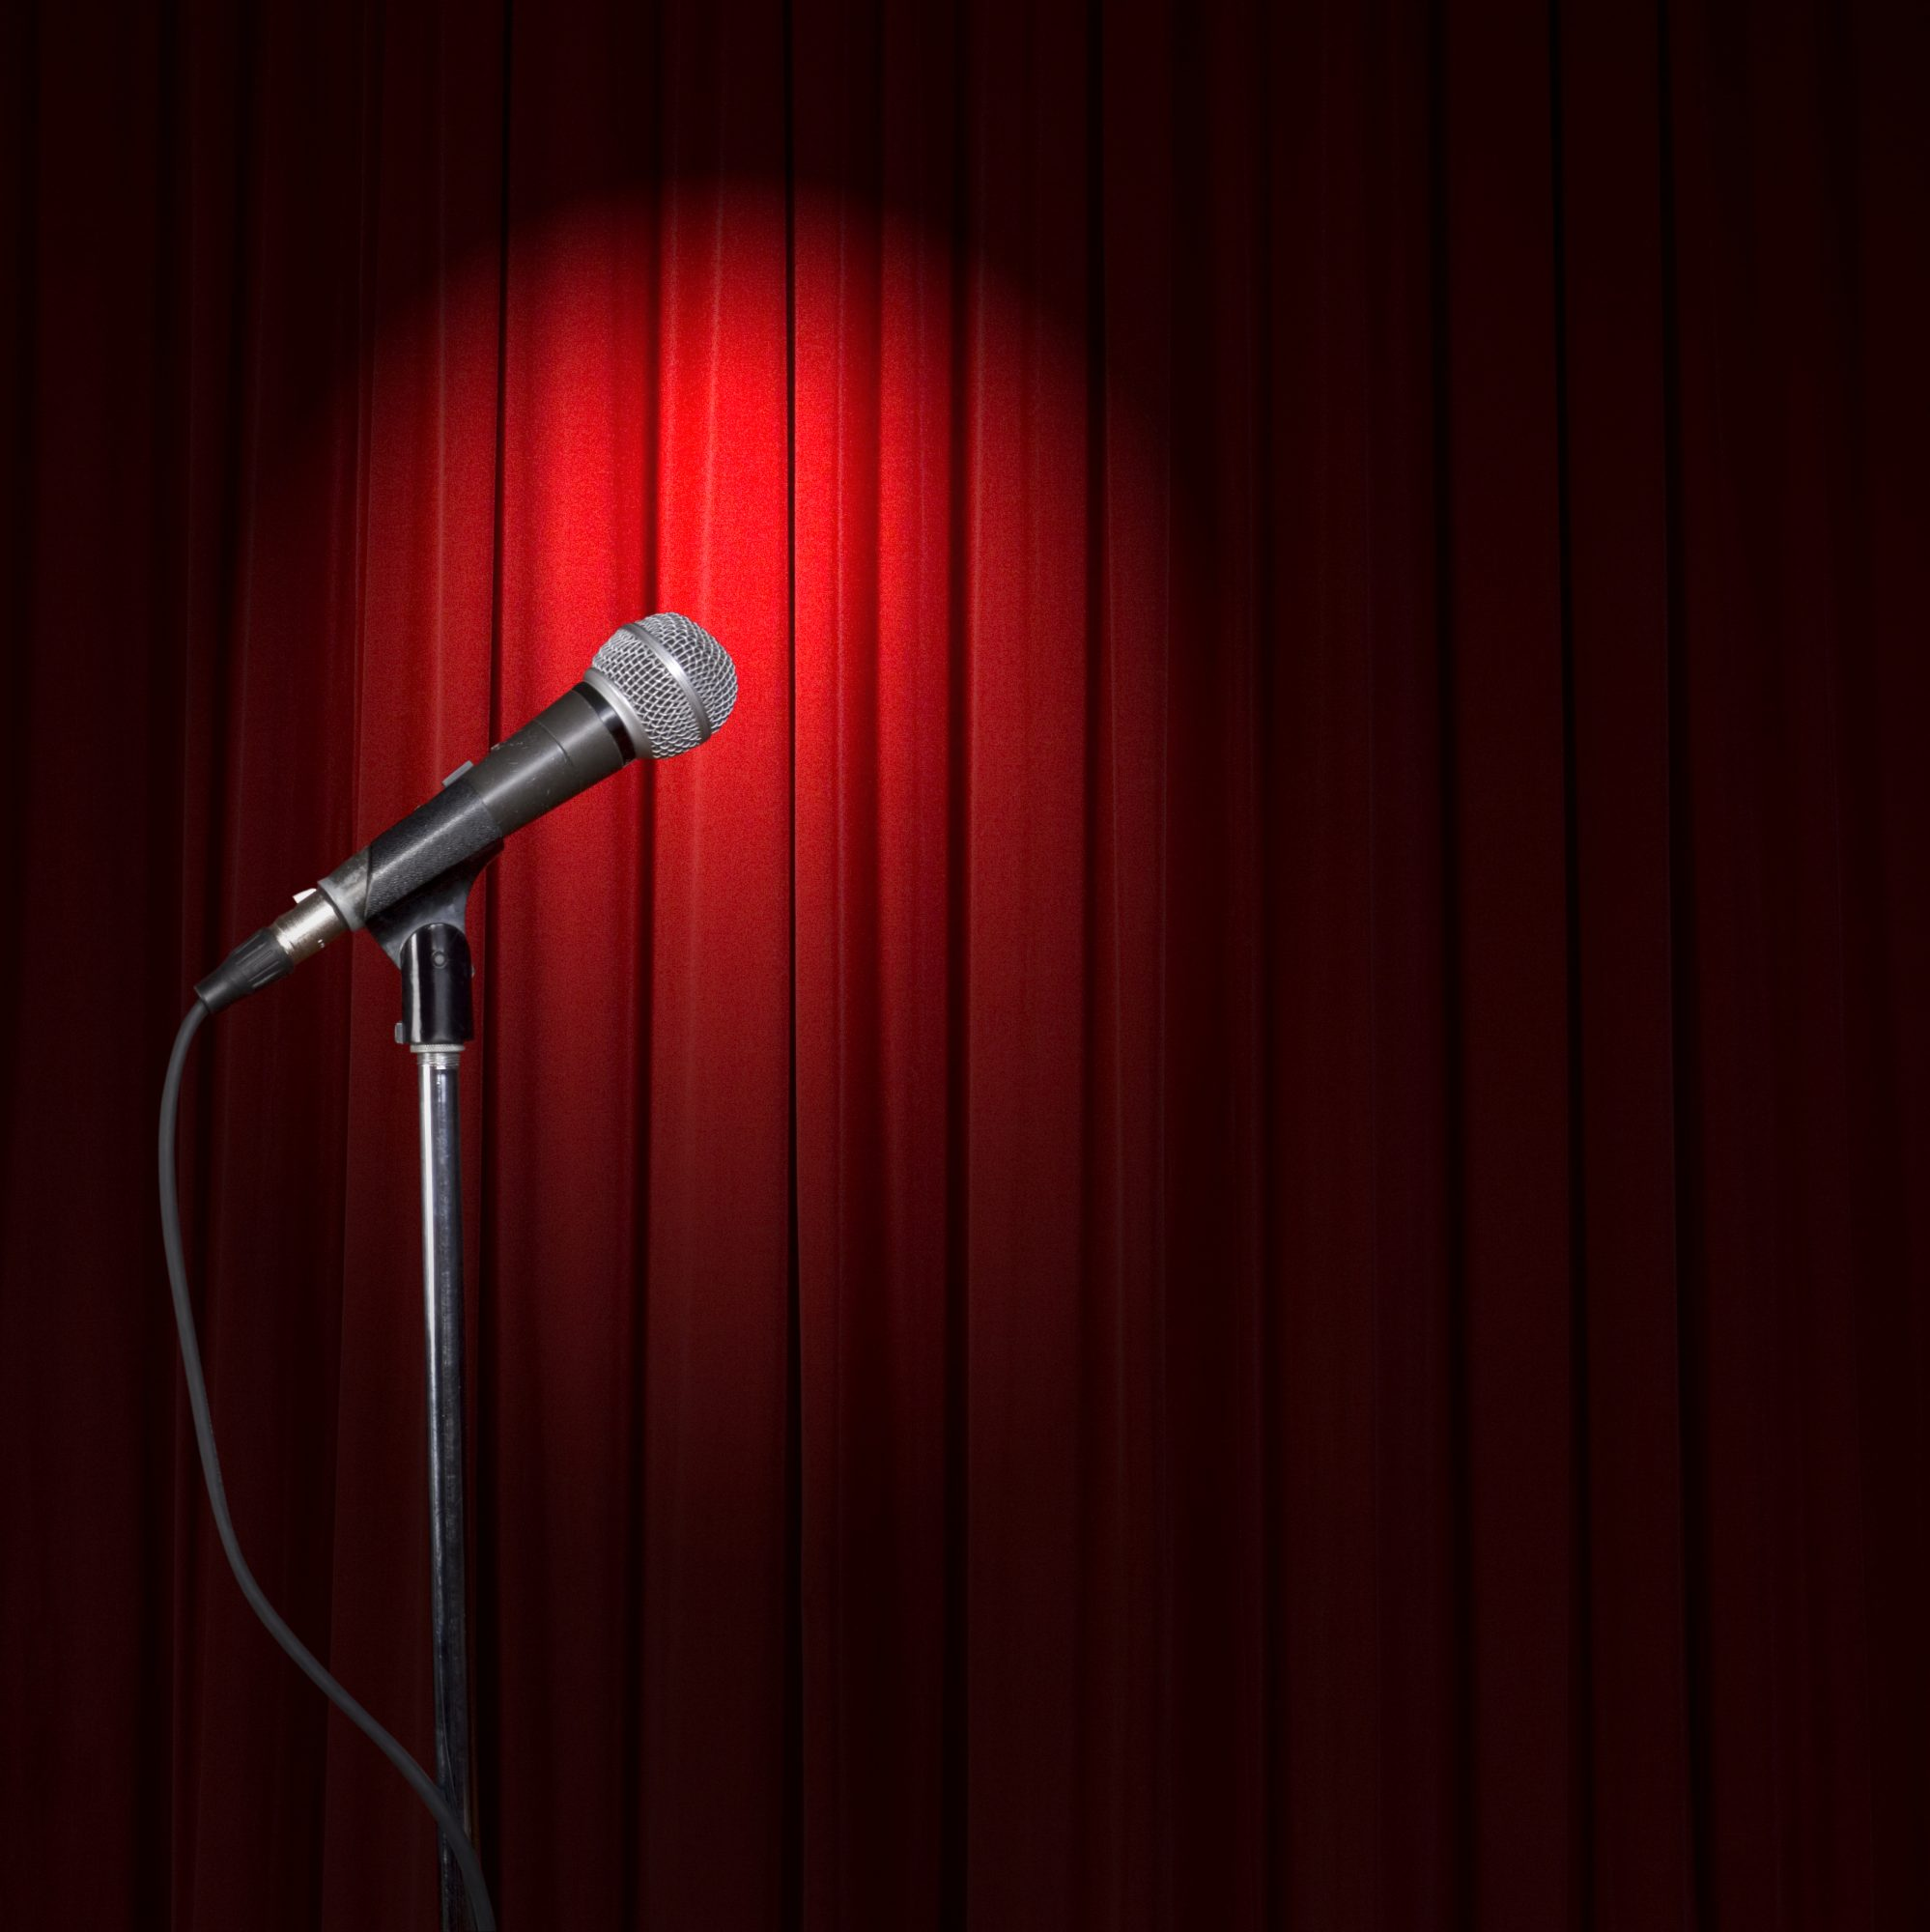 Spotlight on microphone and red curtain